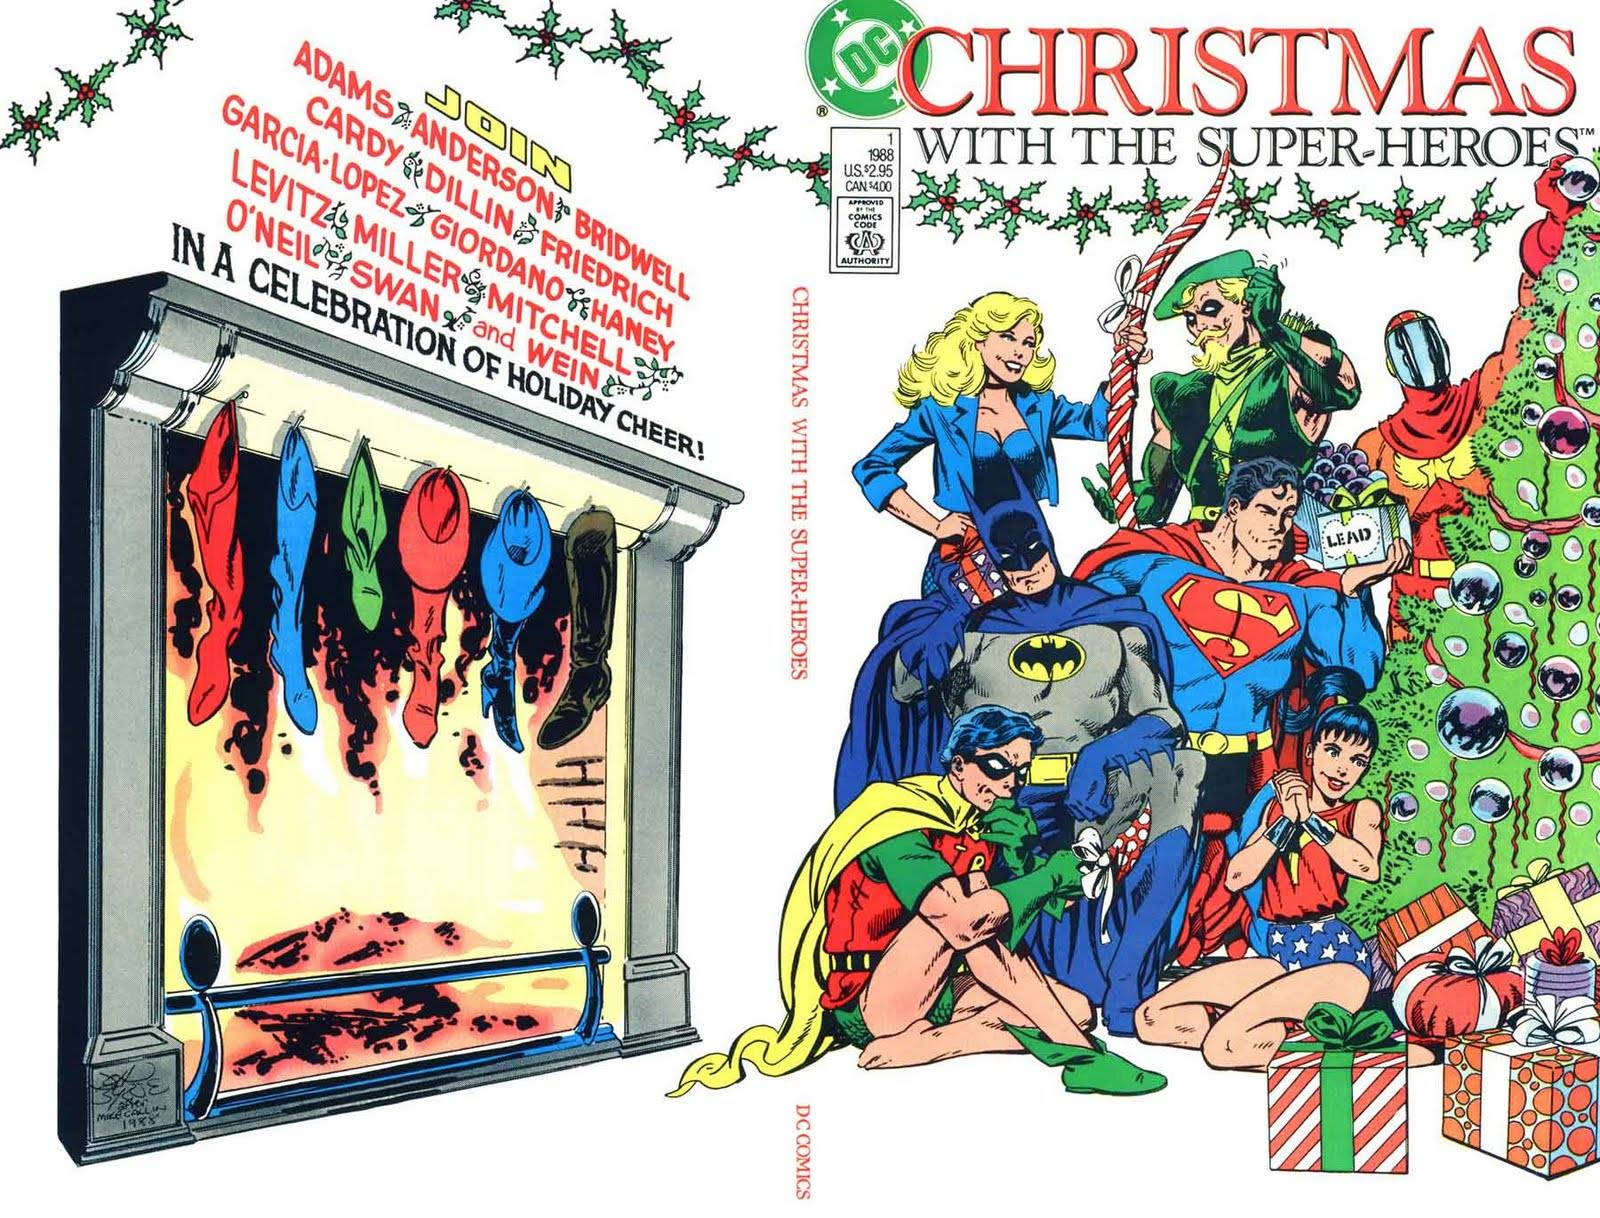 Christmas themed comic book with superheroes It is published by DC 1600x1218